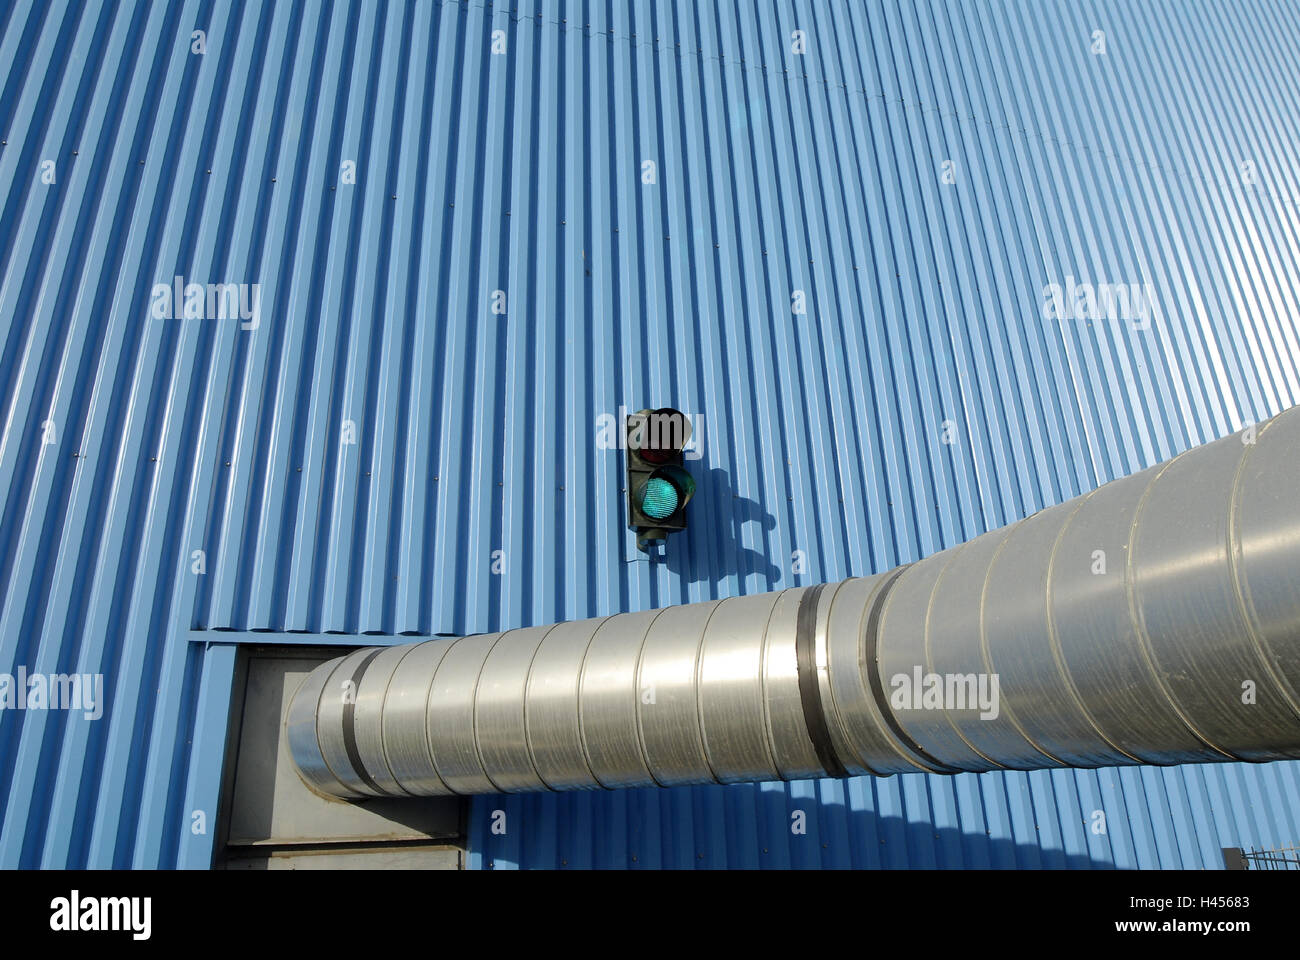 Industrial building, corrugated iron facade, ventilation pipe, traffic light, - Stock Image